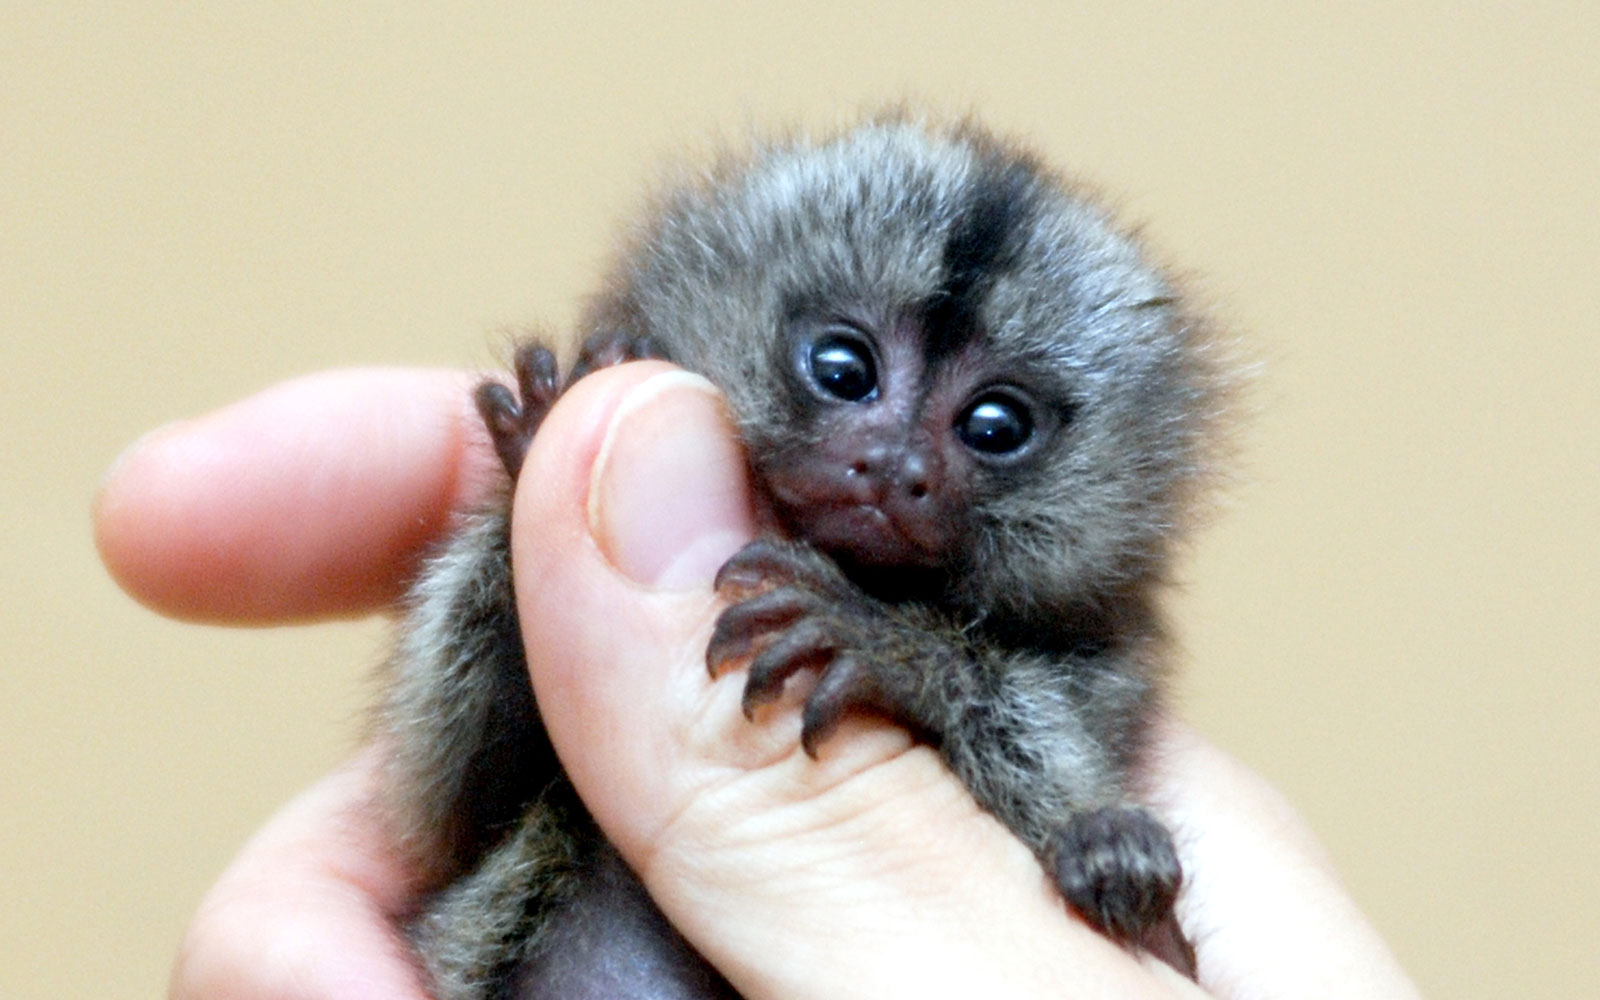 A marmoset on a person's hand.